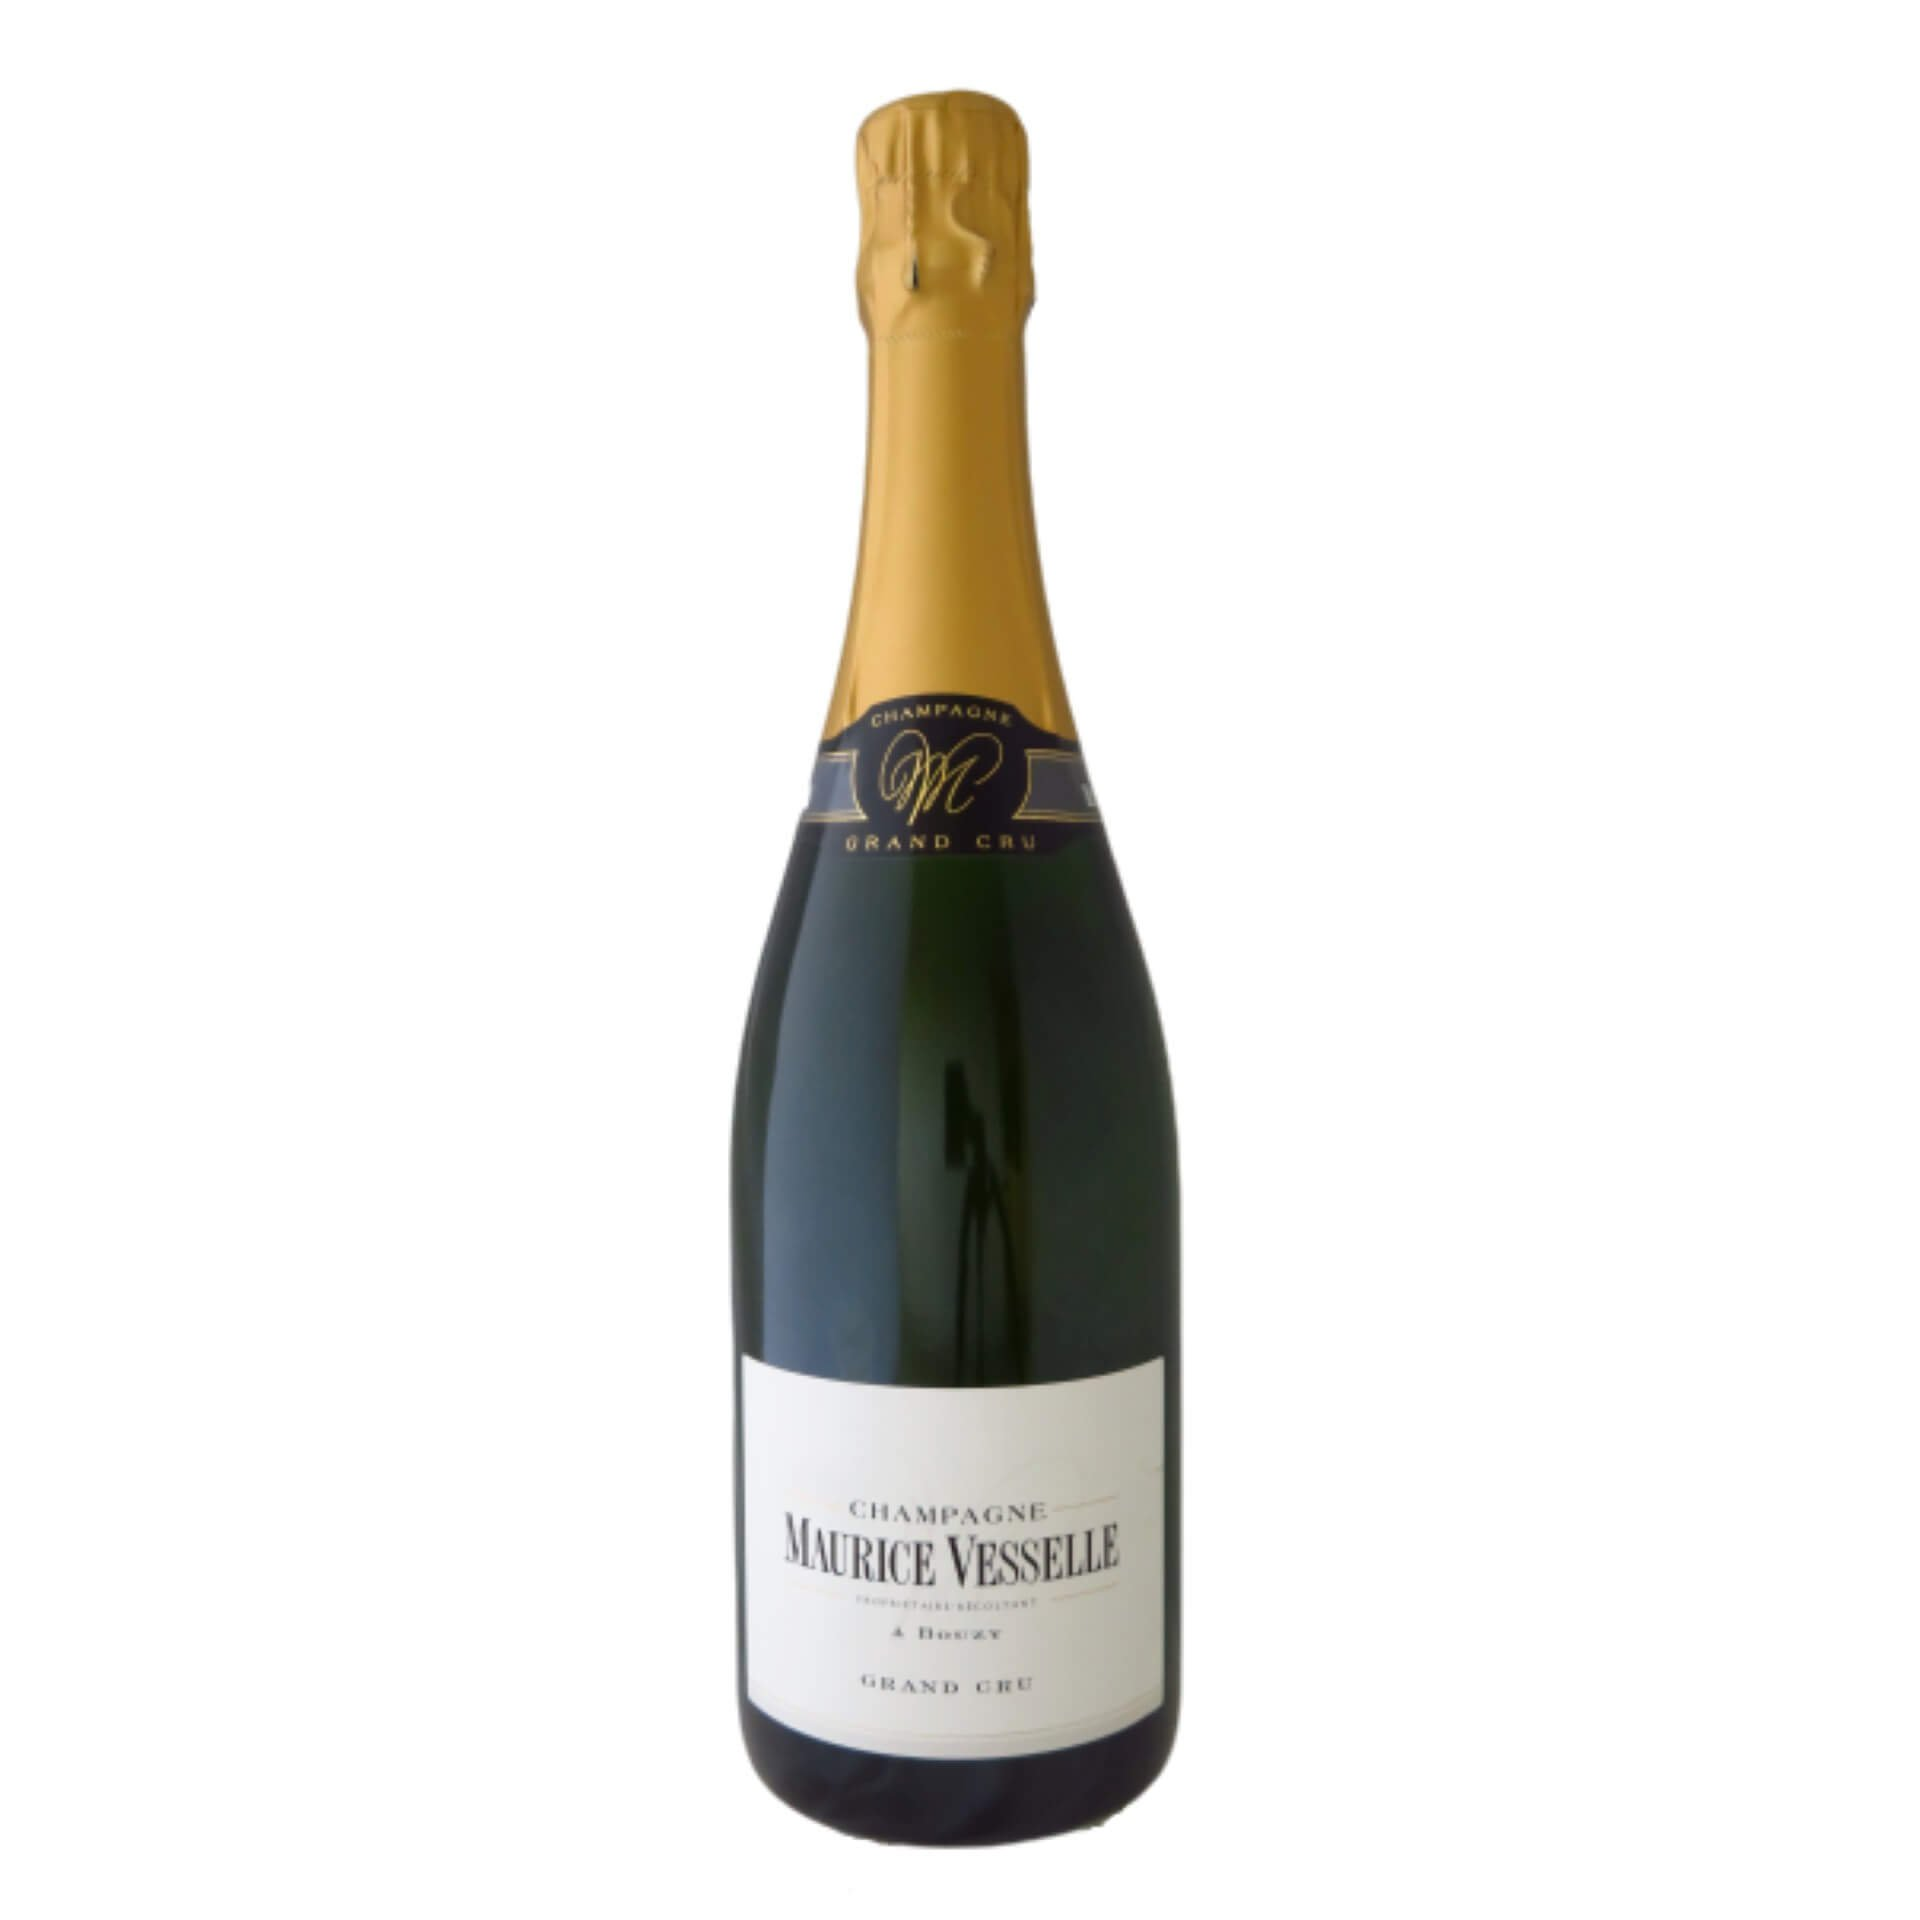 Maurice Vesselle Grand Cru Champagne